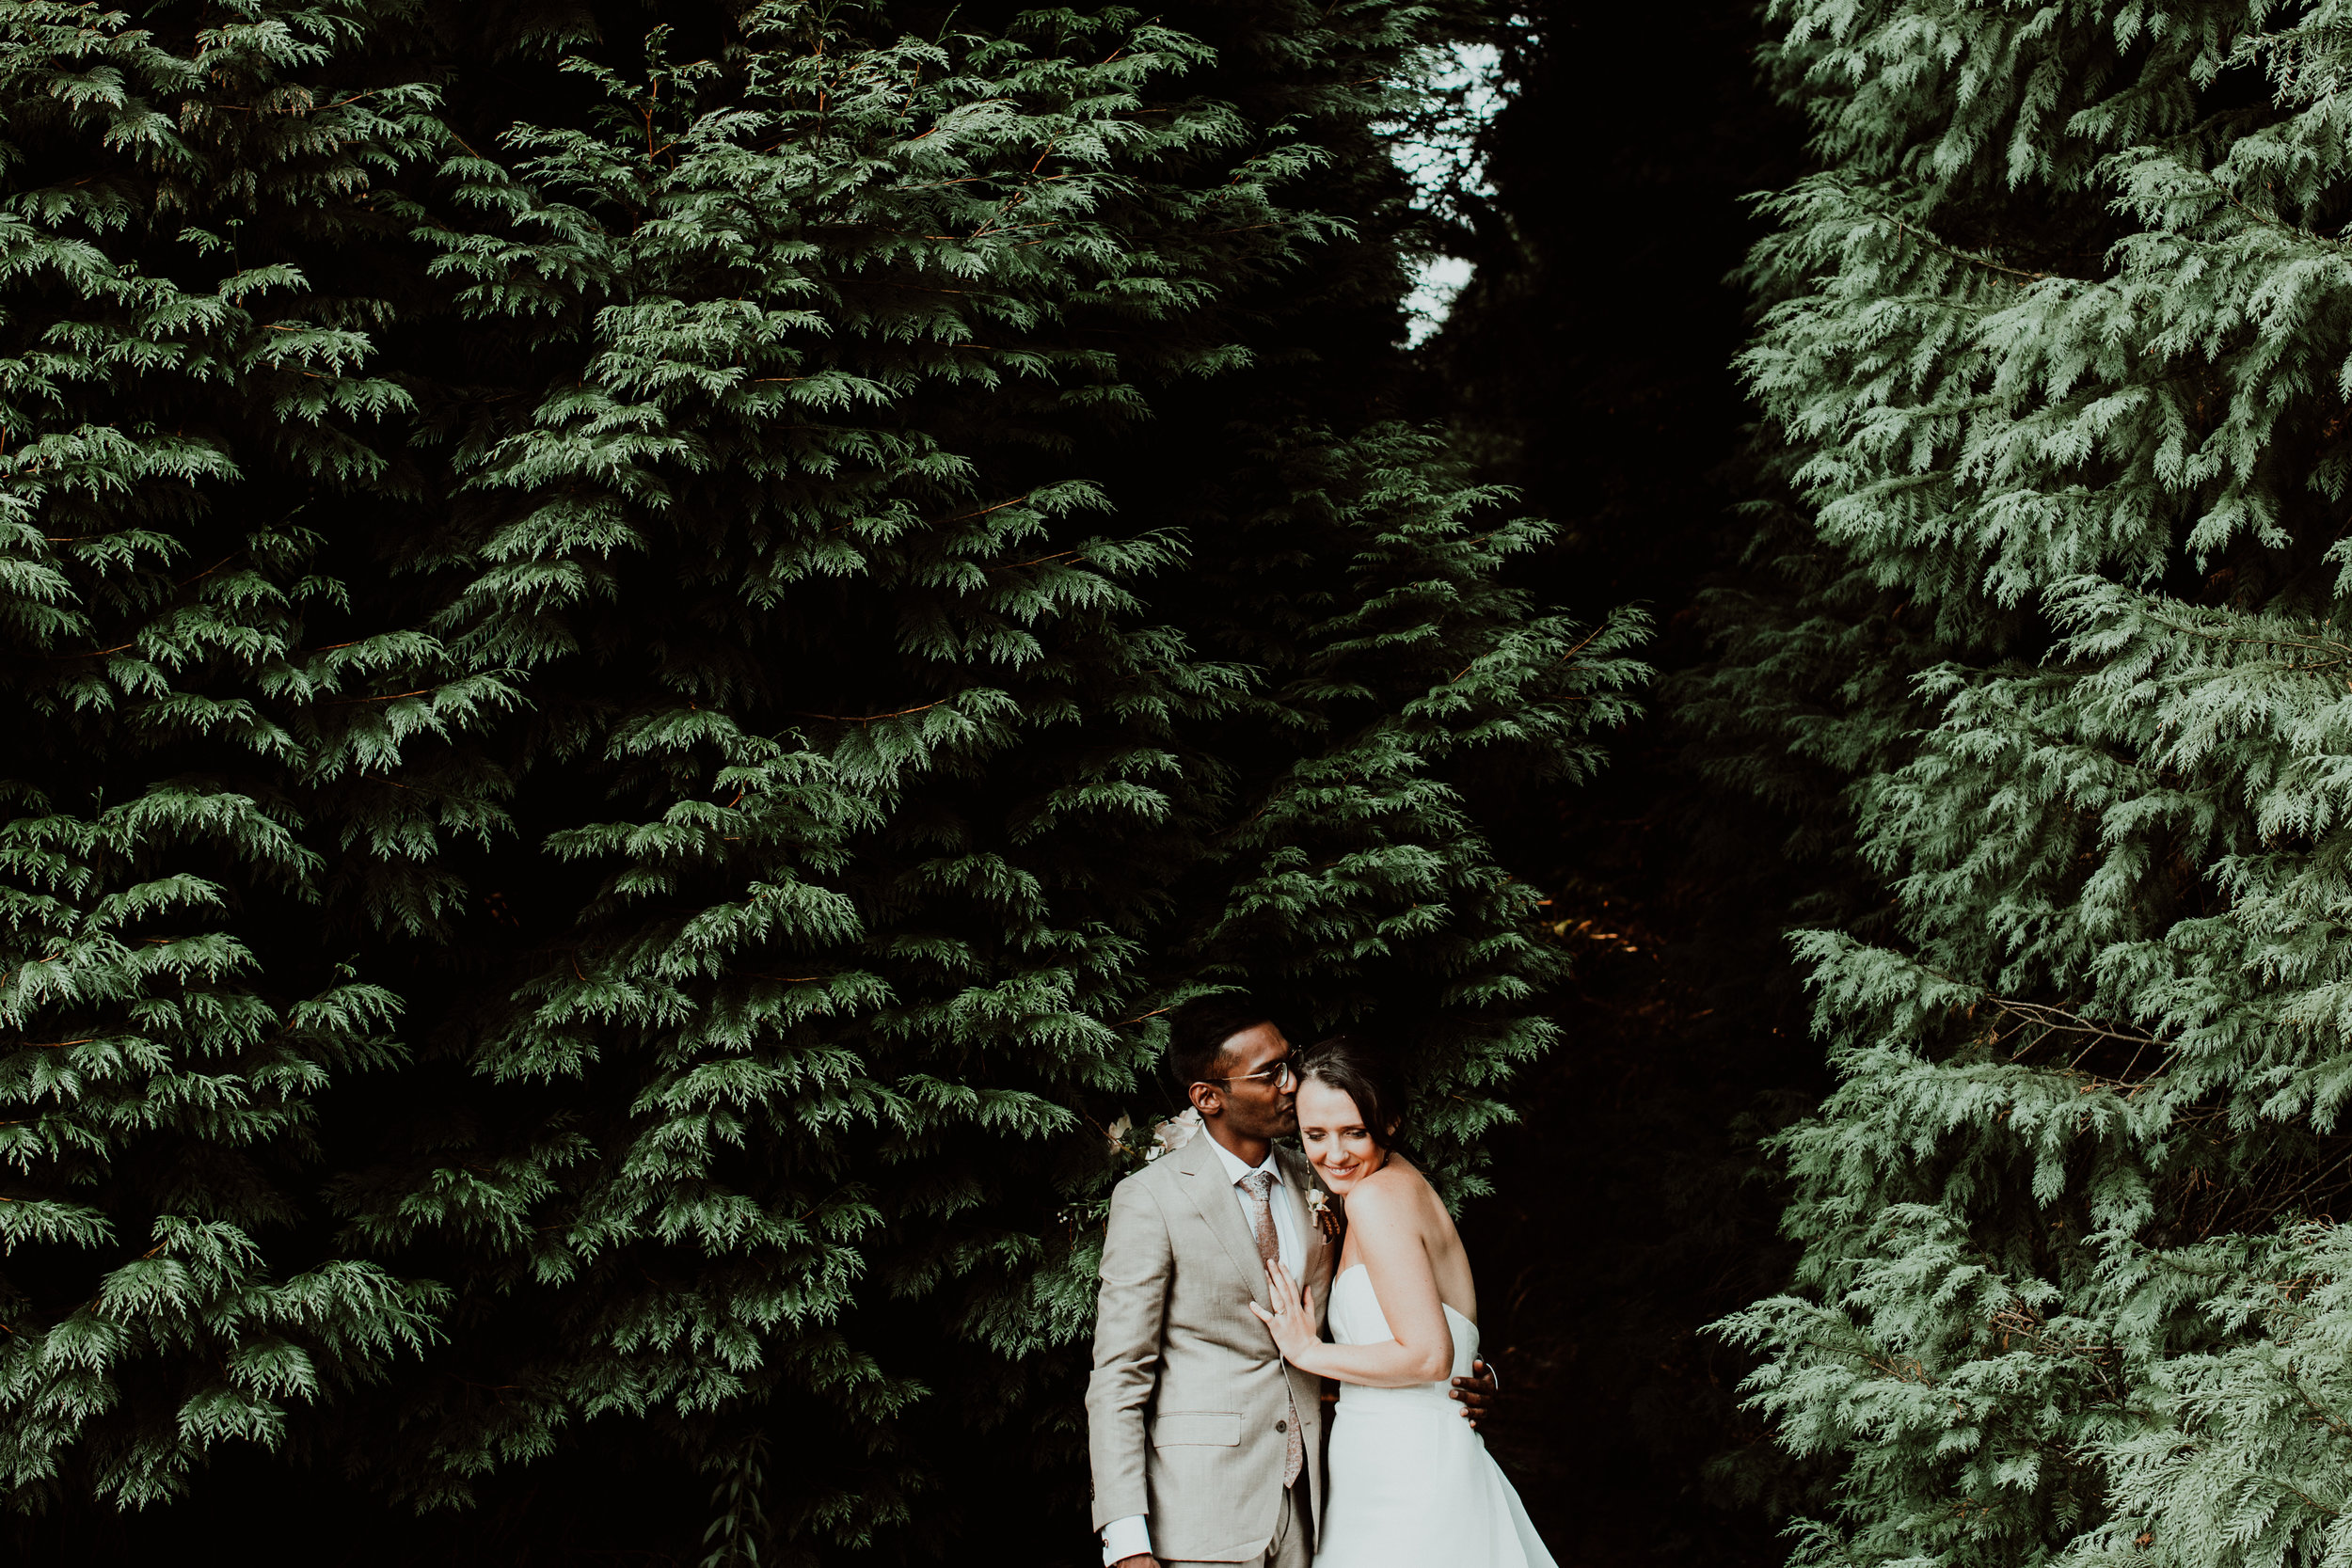 Photo in forest at newcastle hunter valley sydney area with wedding photographer.jpg